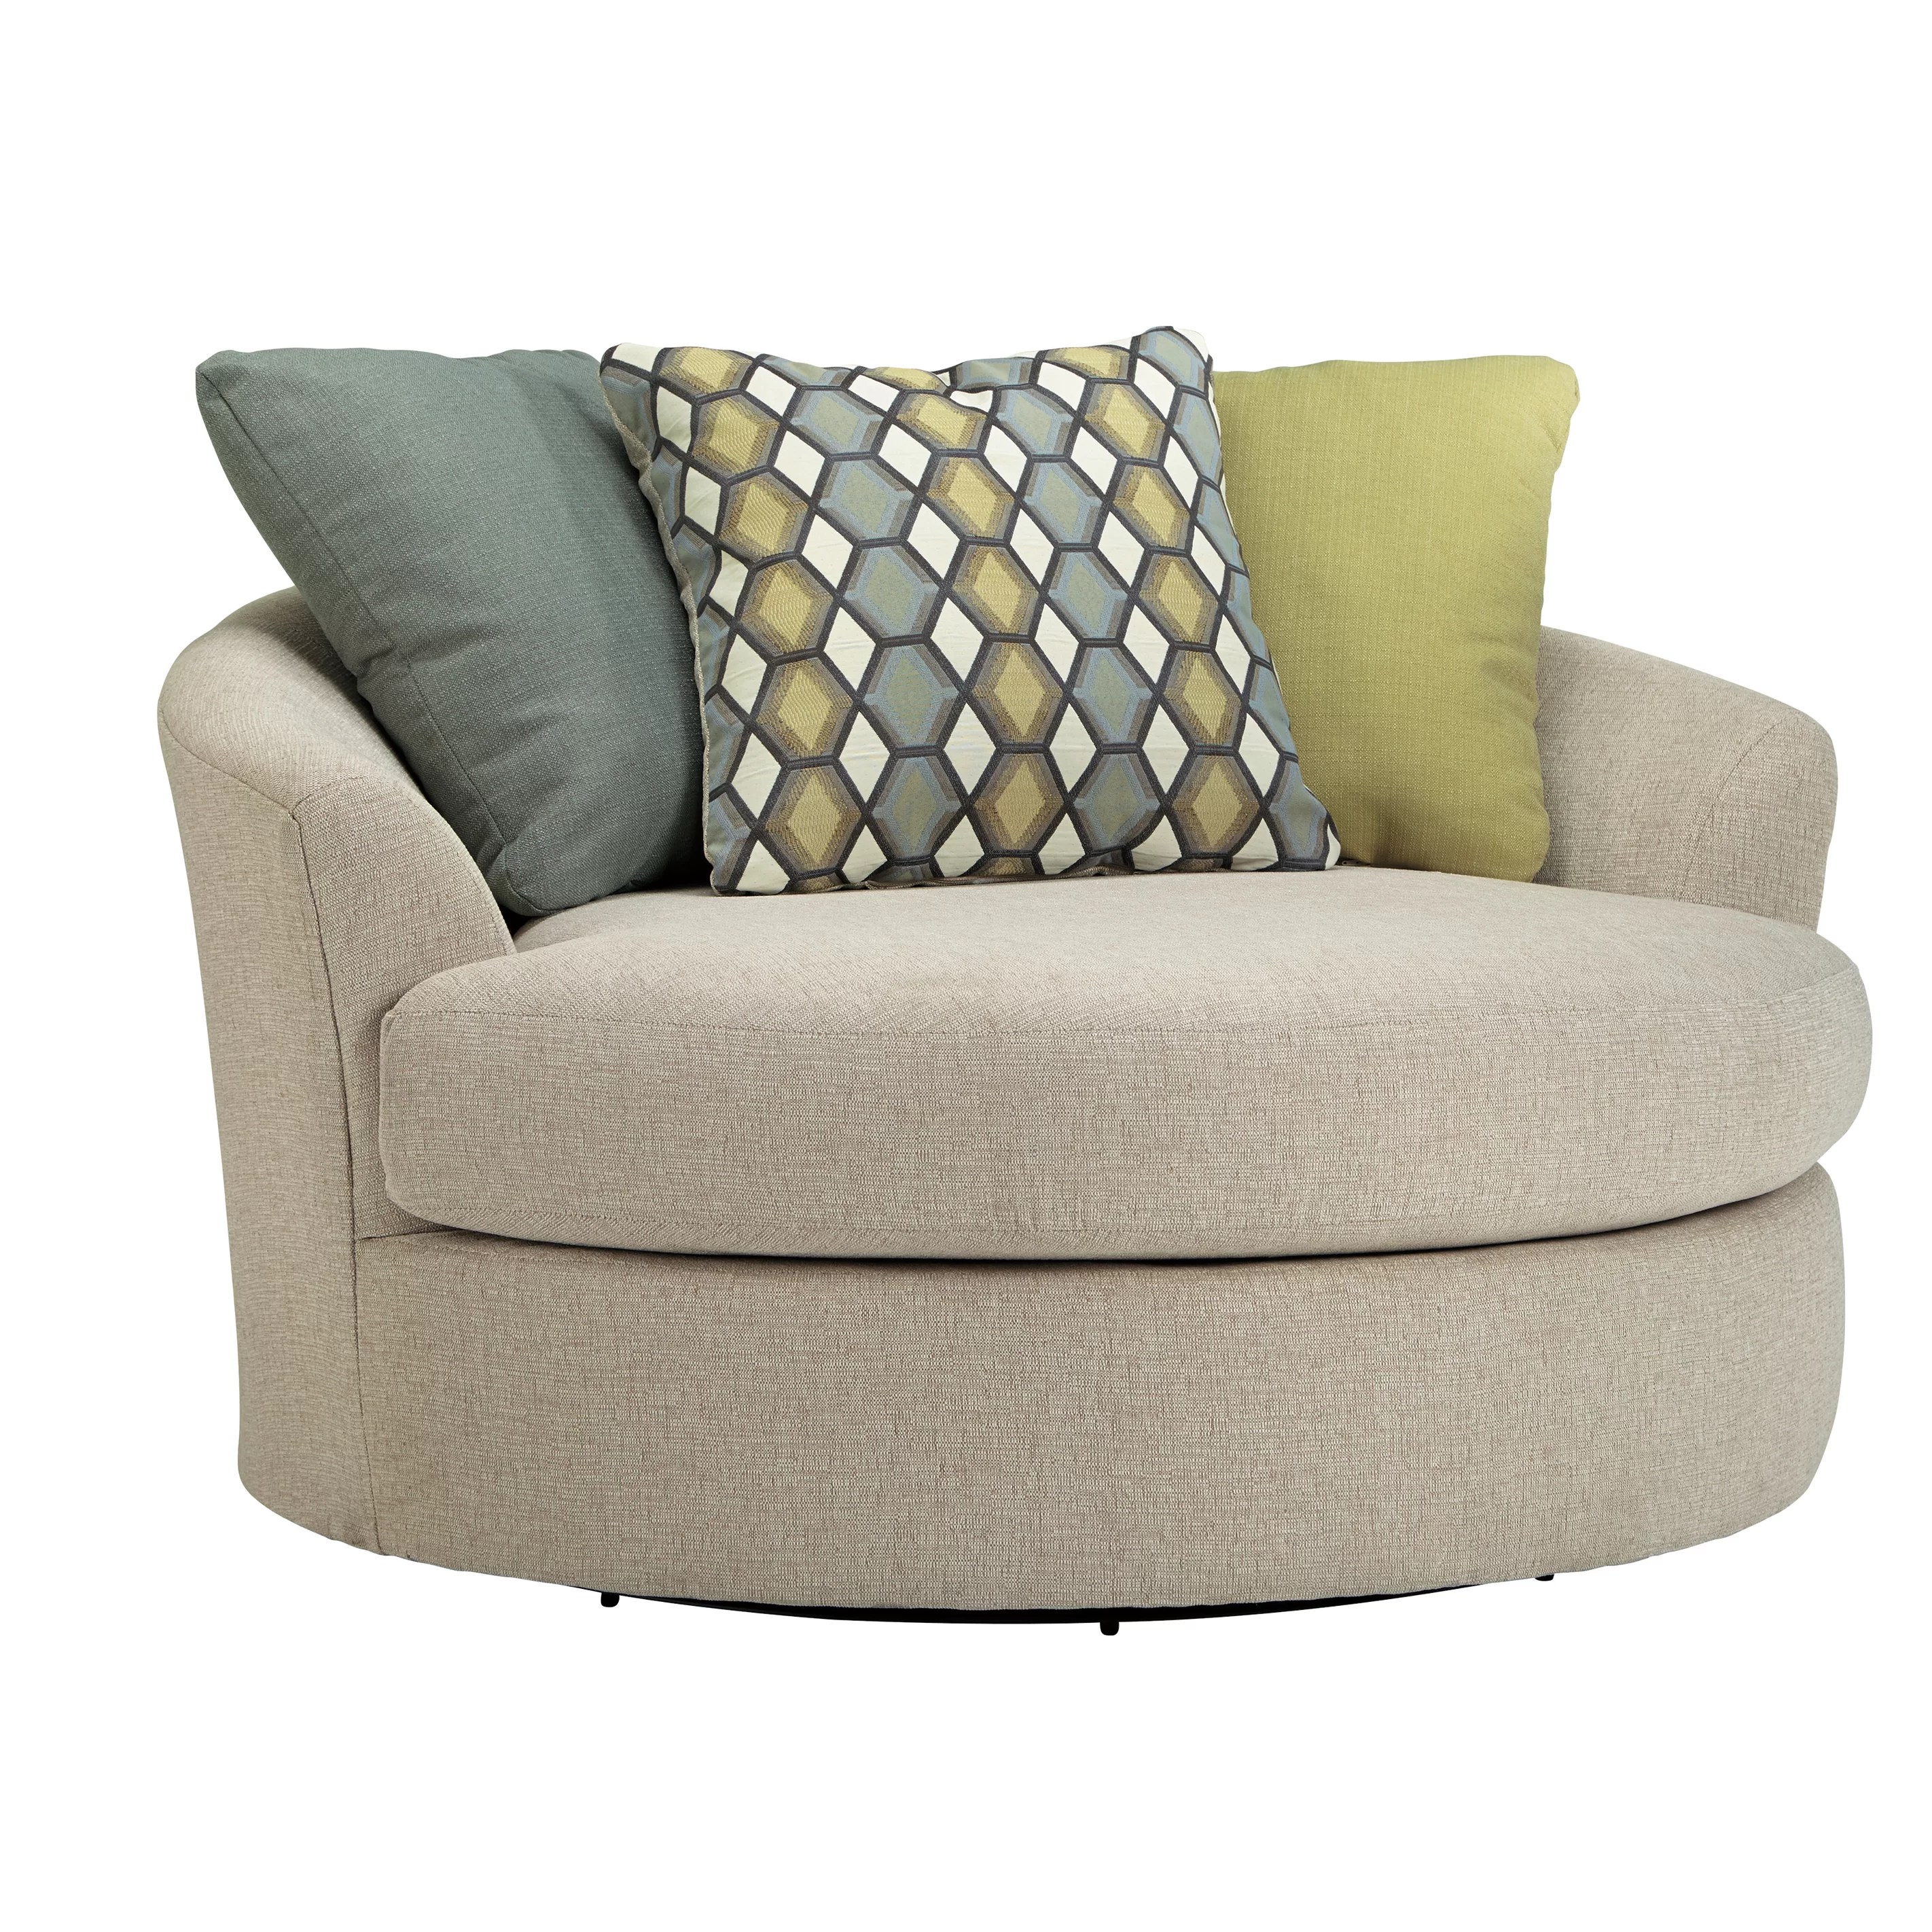 Oversized Swivel Chair Home Decor